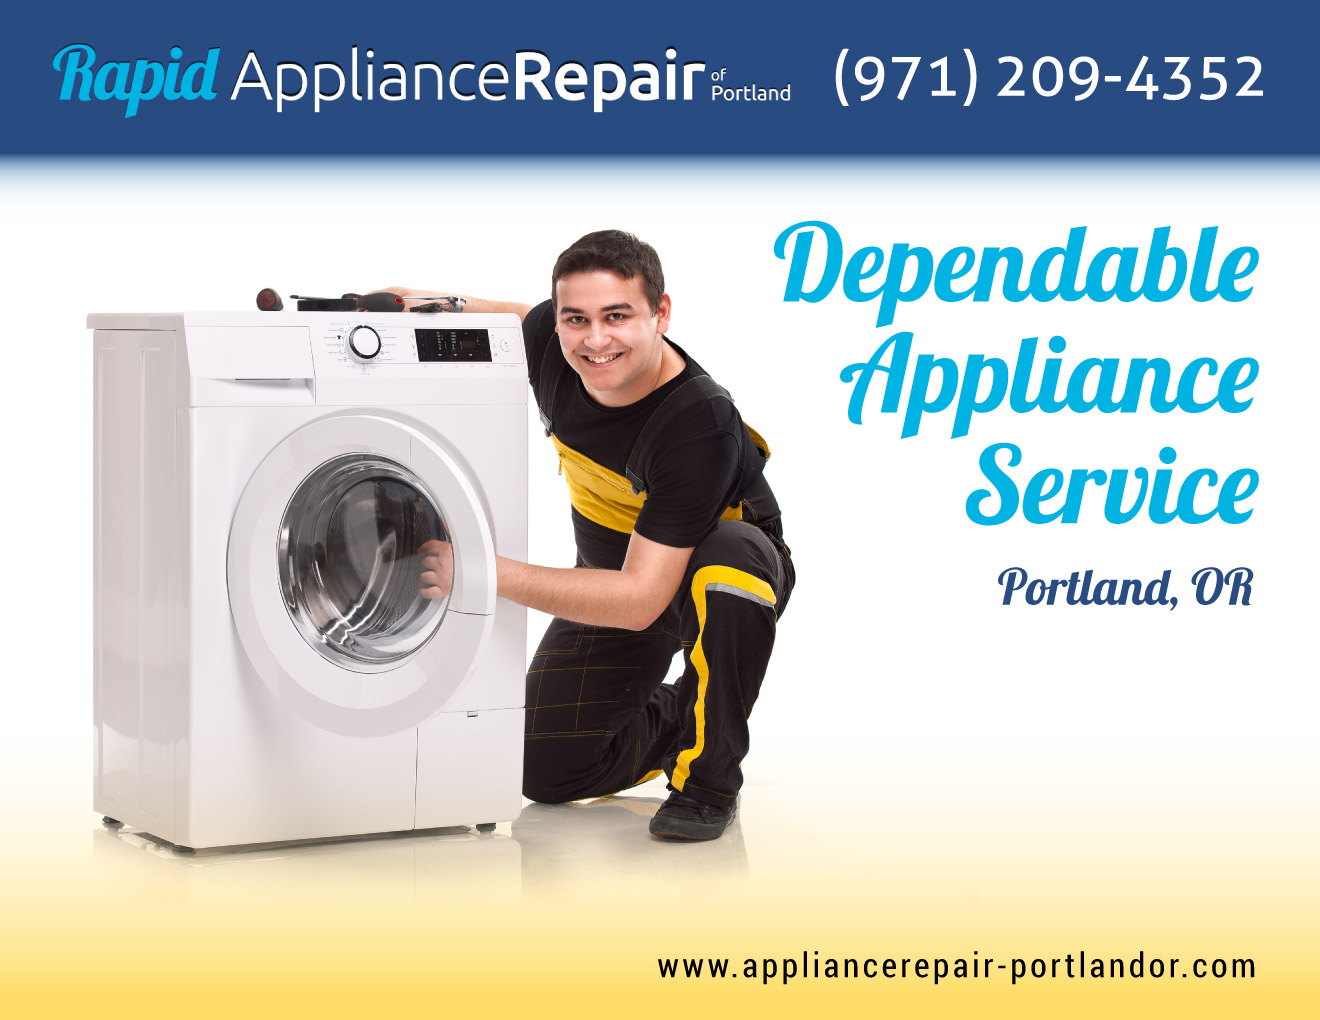 Portland Appliance Repair And Parts  About Us  Contact. Online Mba In Human Resources. Catchy Names For Employee Recognition Programs. Aspen University Online Tampa Florida Roofing. Ding A Ling Answering Service. Best Way To Ship Furniture Free Php Ecommerce. Doctor Who Captain Jack Alcohol Current Event. Storage Units Manassas Va Colorado Bail Bonds. Dental Assistant Programs In Missouri